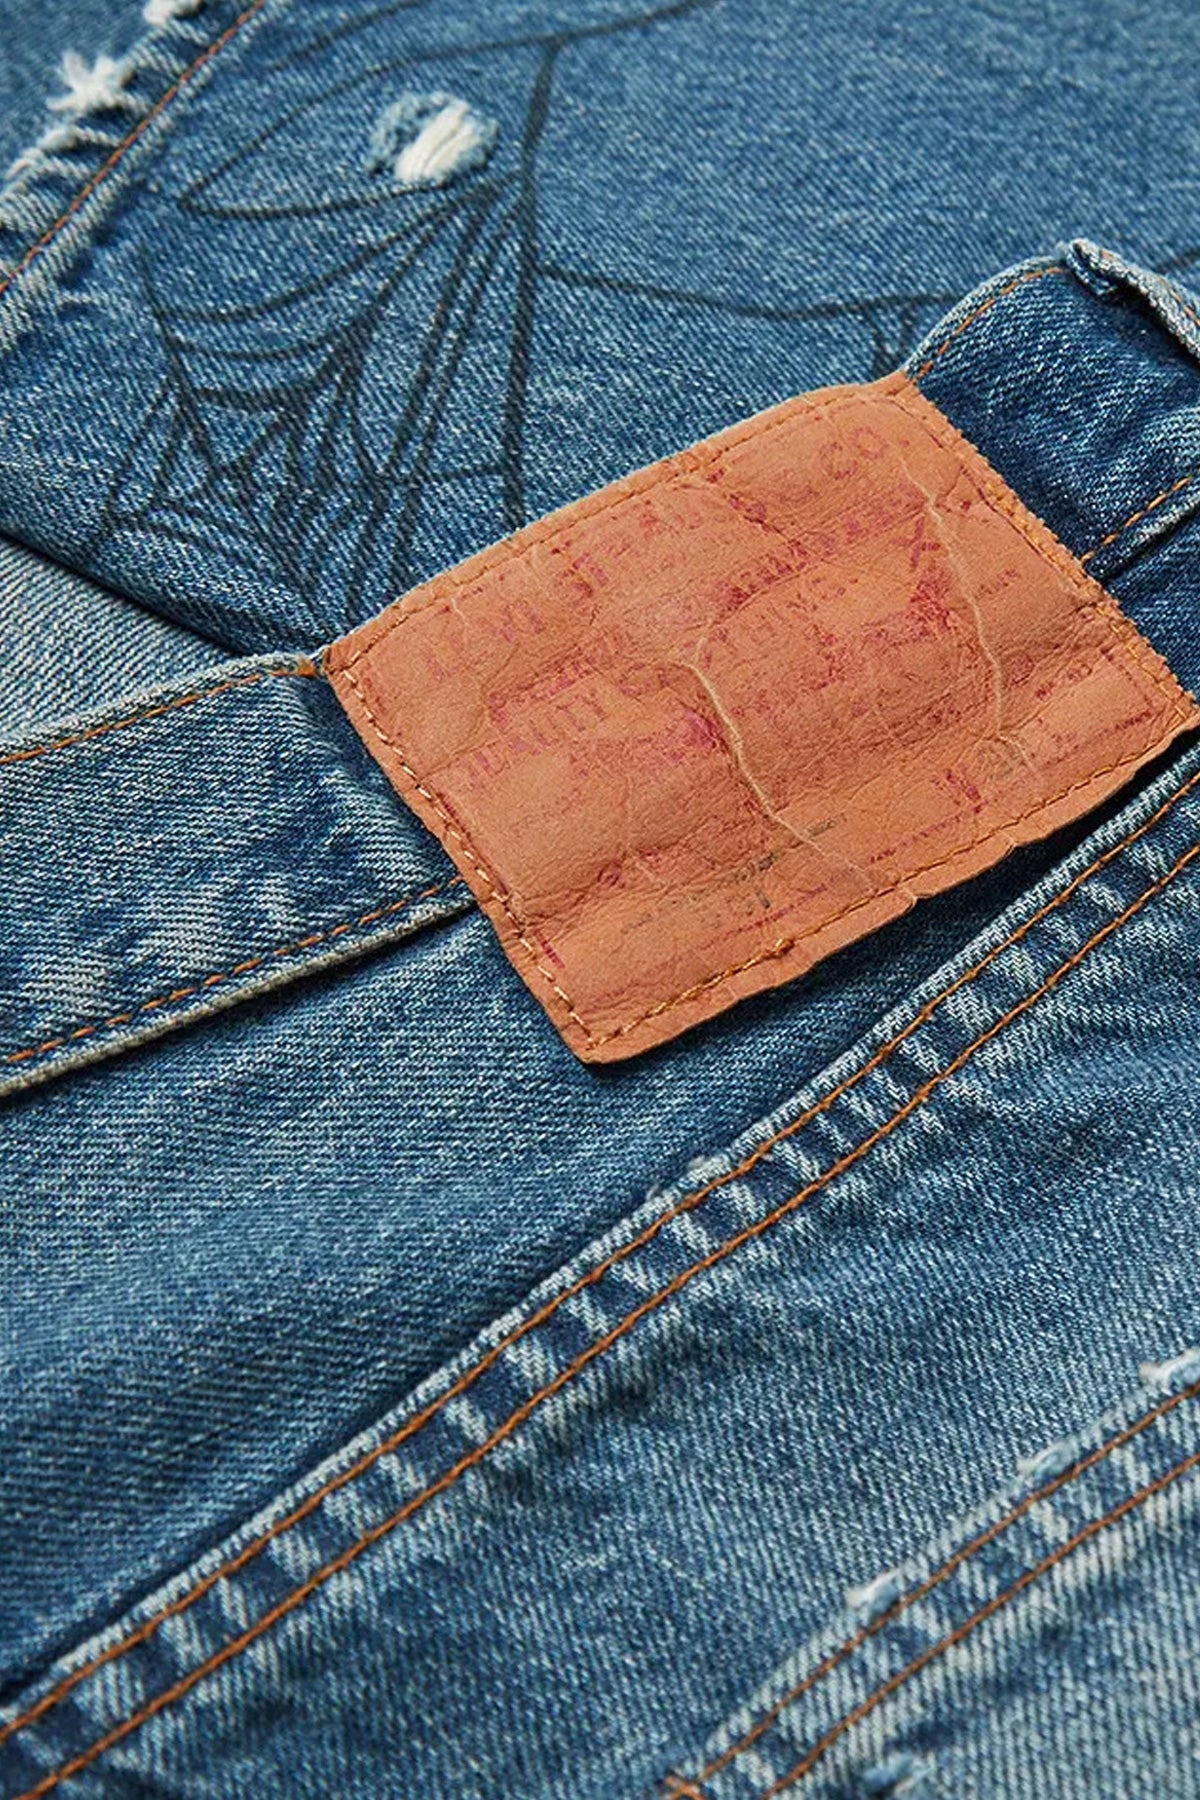 Levi's Vintage Clothing - 1984 501 Jeans Tangled Web - Canoe Club